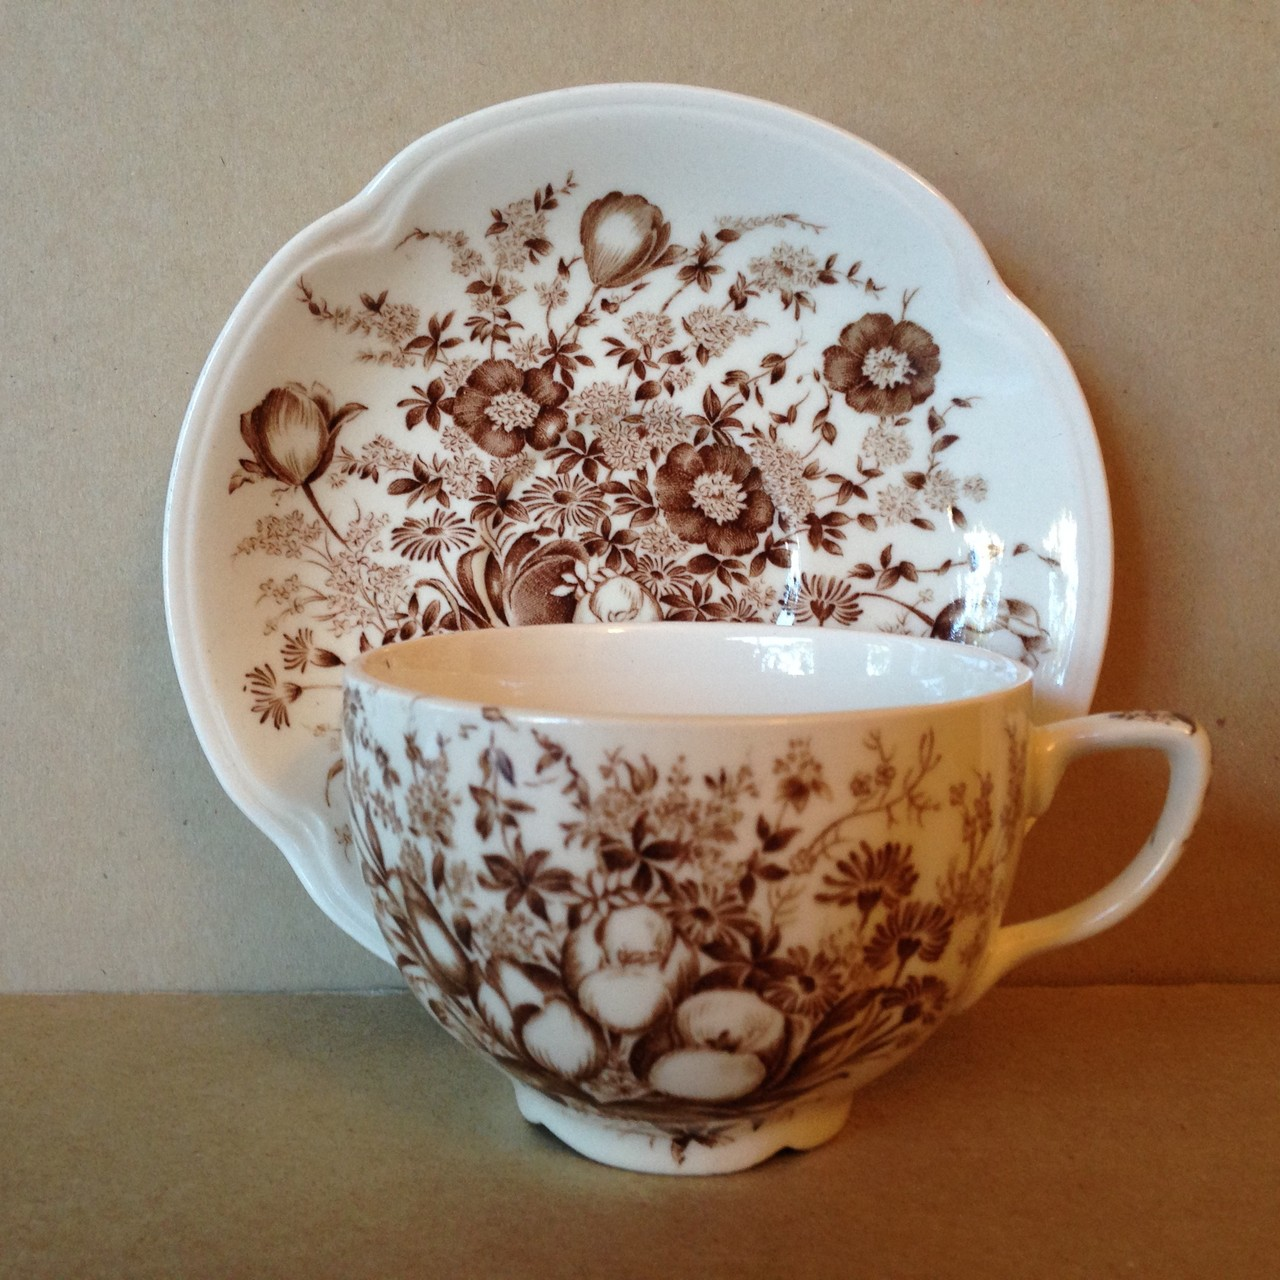 Brown Toile Transferware Tulip Vintage Cup and Saucer Center www.DecorativeDishes.net